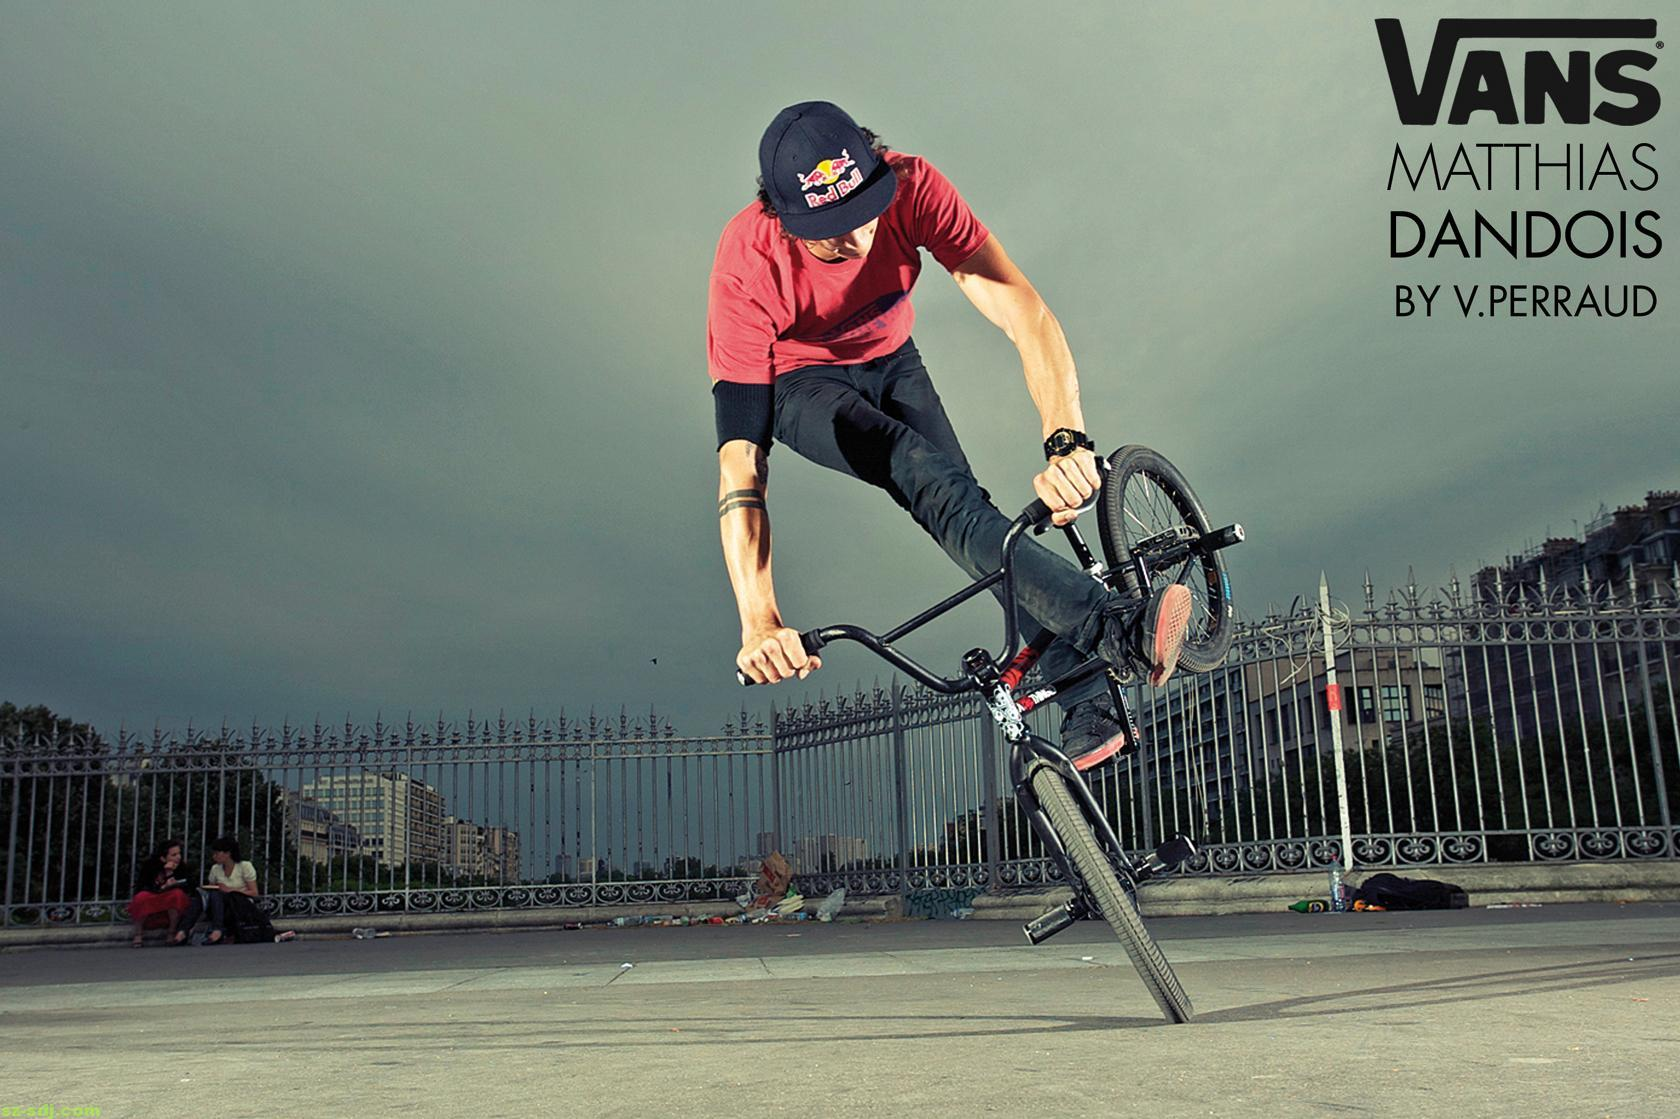 Bmx Pictures HD Download Free Images on